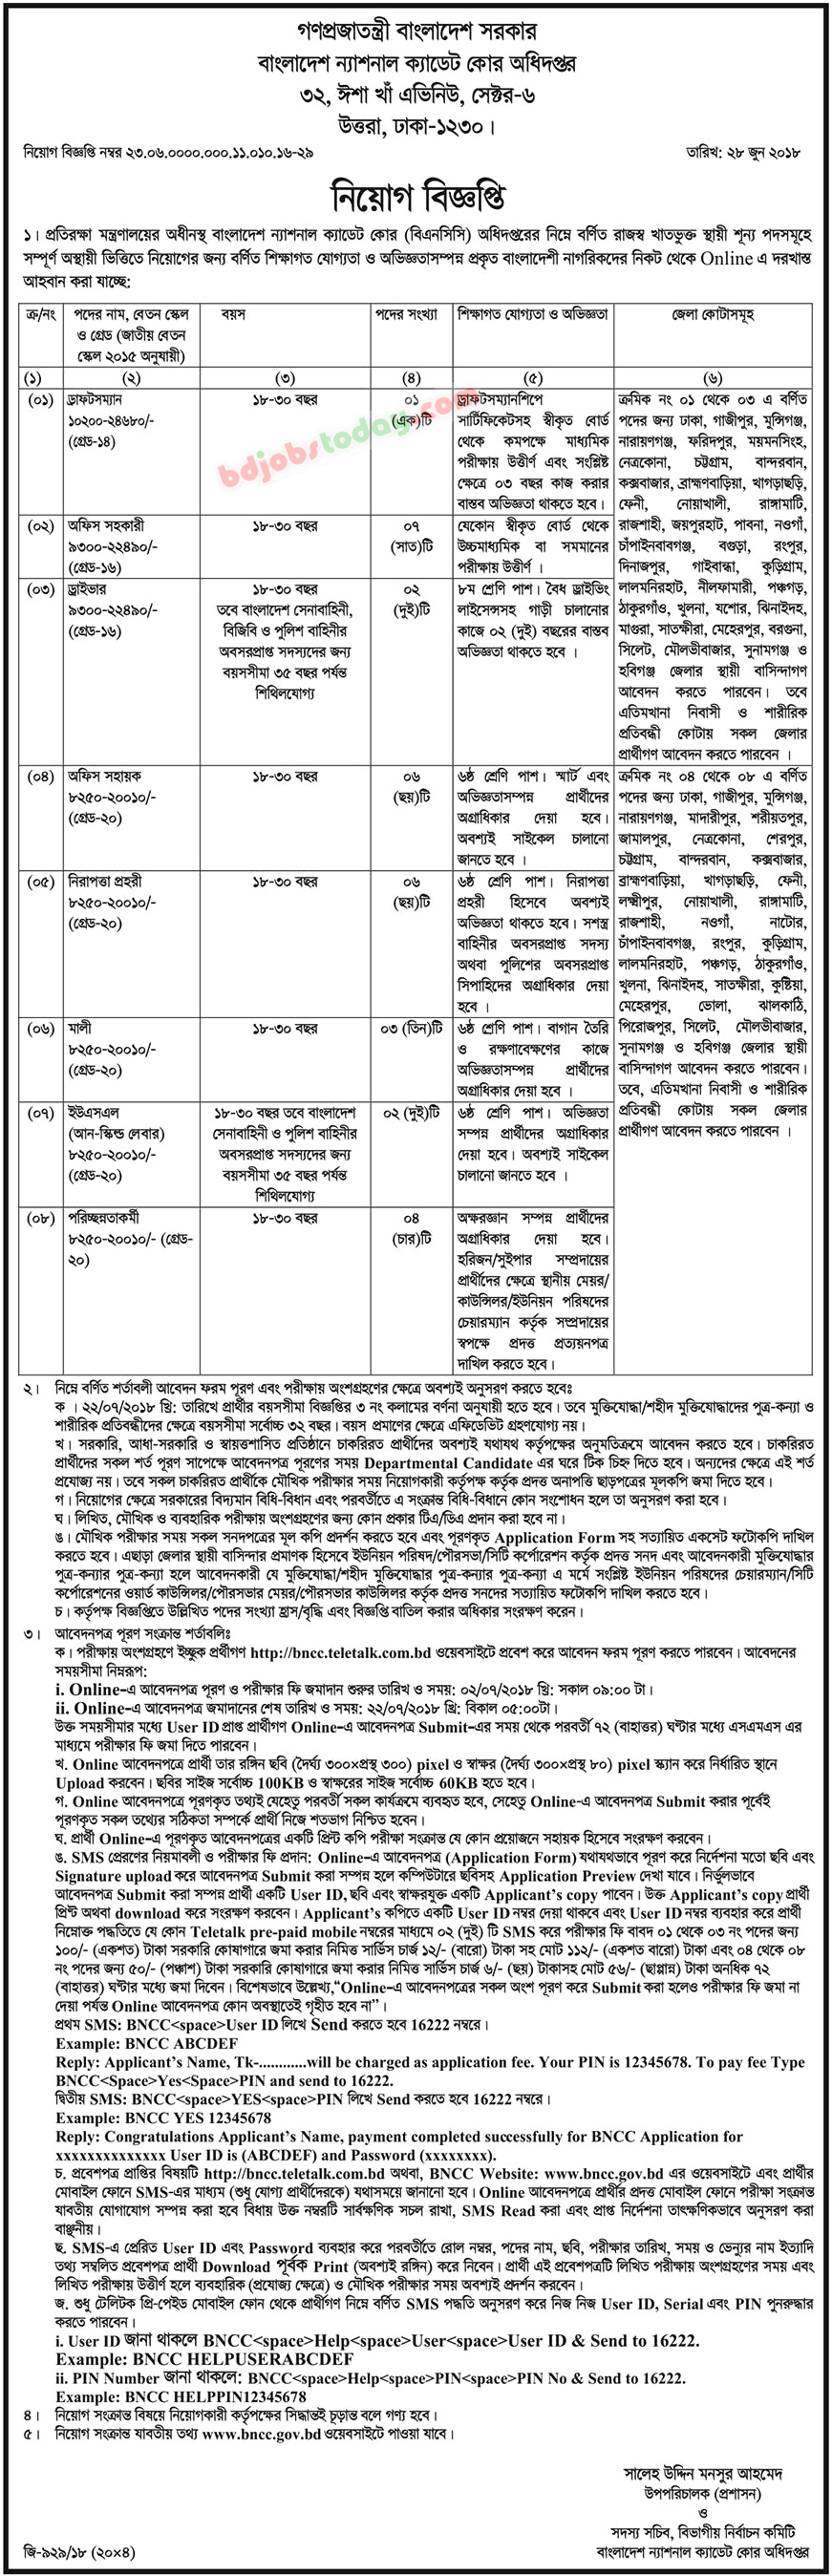 Bangladesh National Cadet Corps (BNCC) jobs